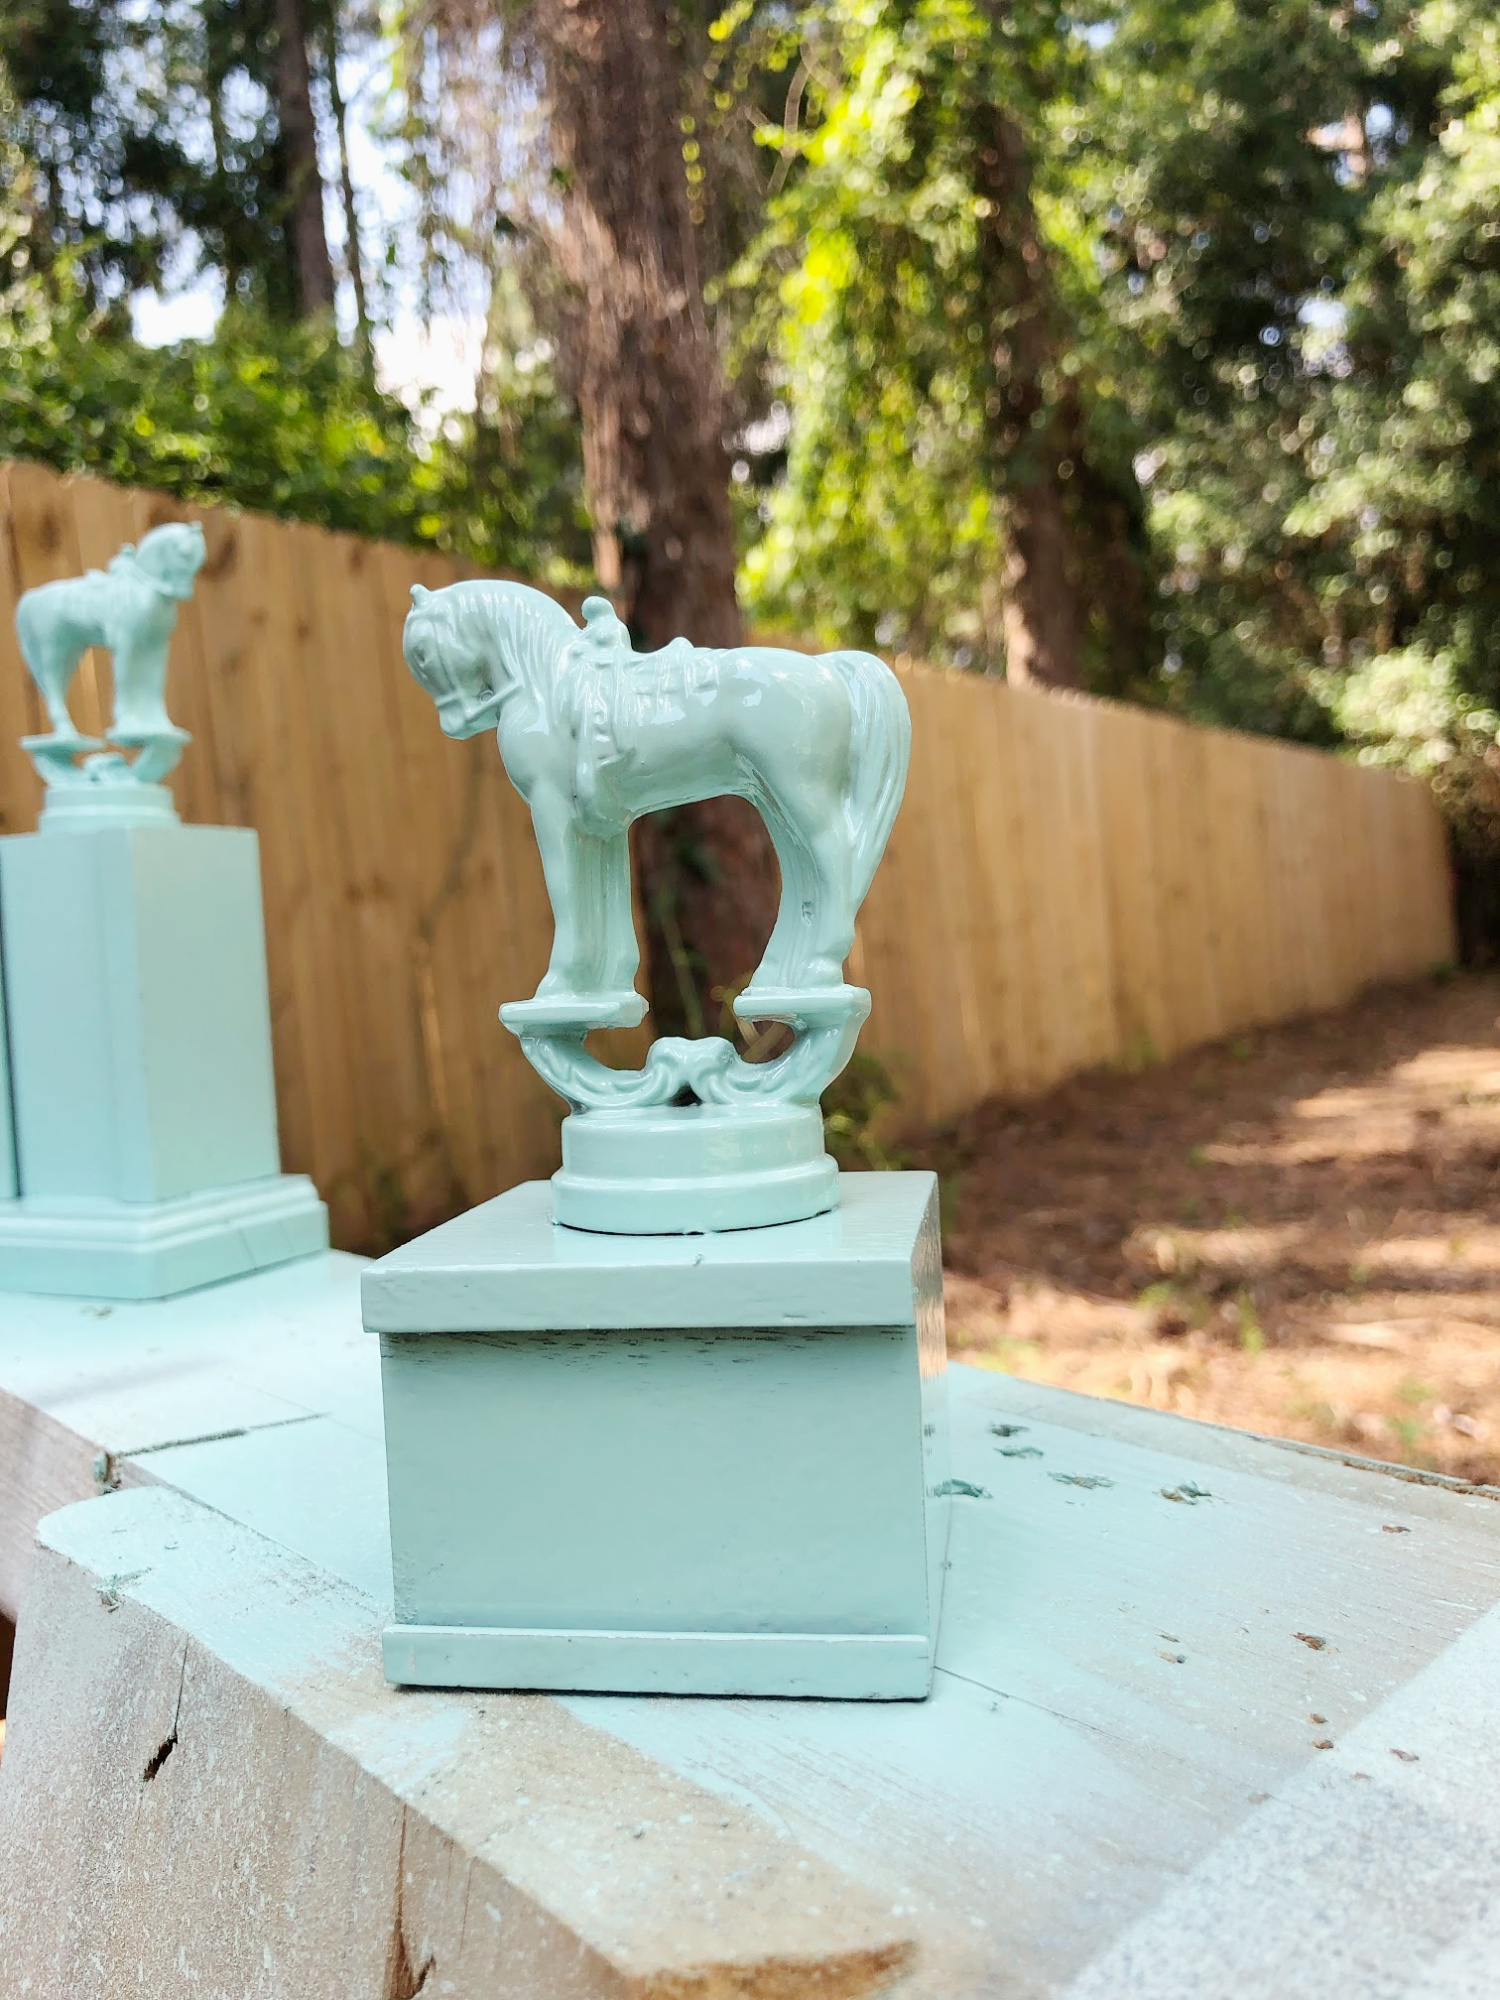 spray paint trophy for easy home decor repurposing